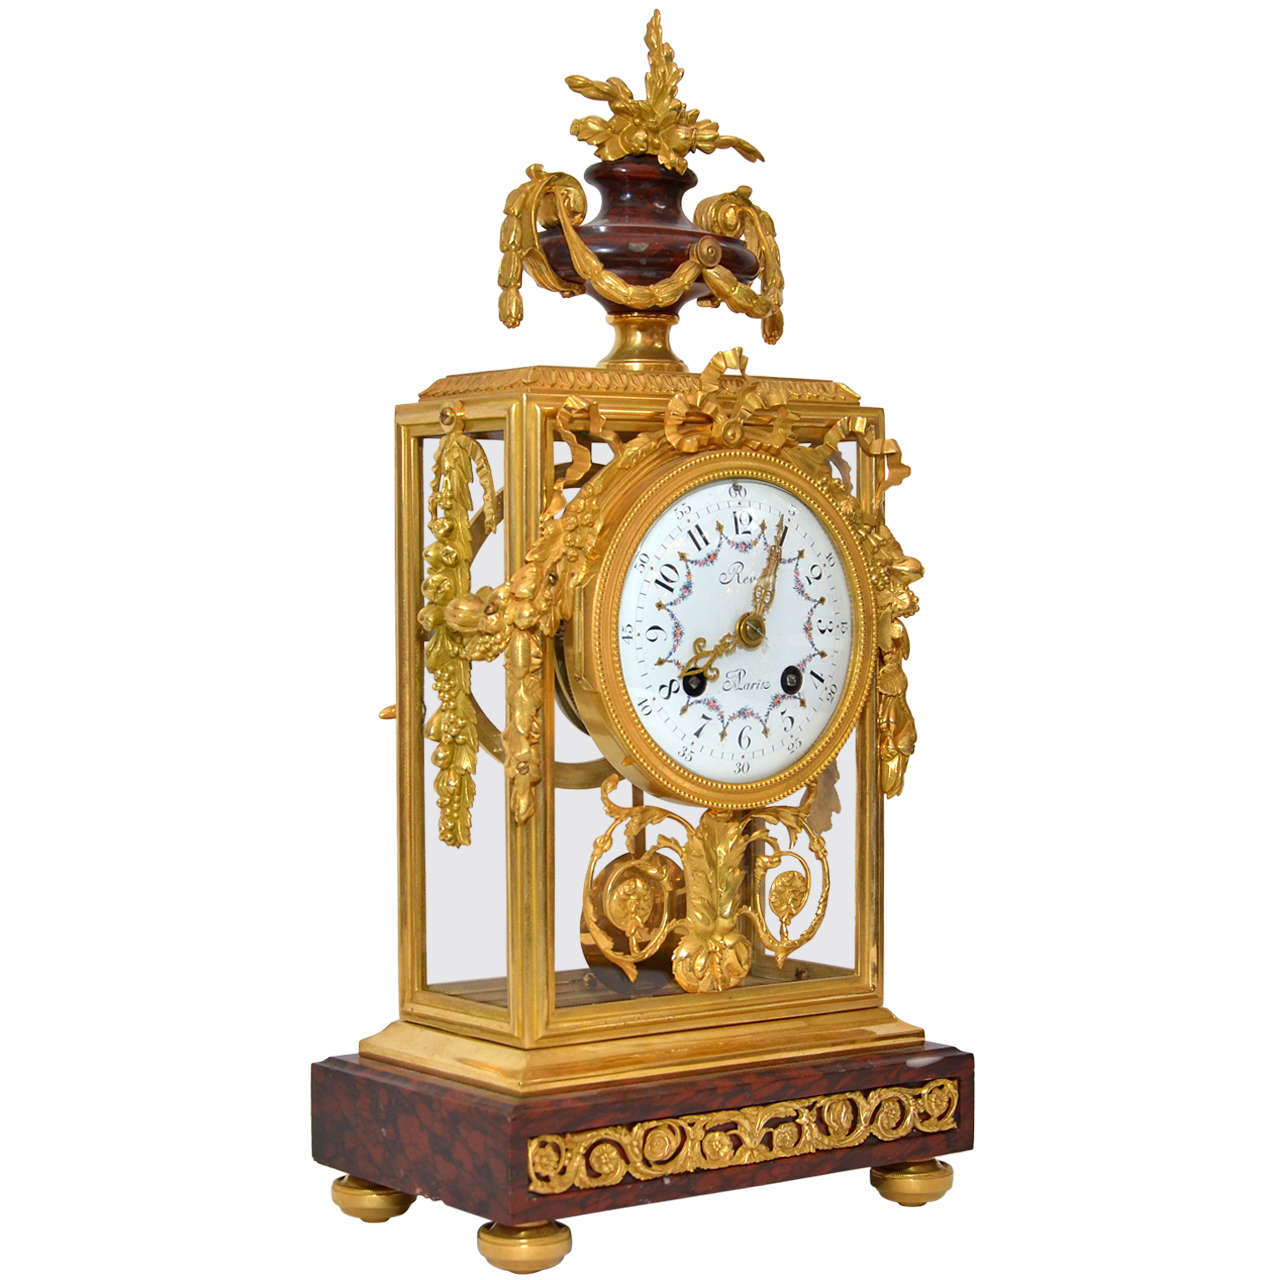 Unusual crystal and marble mantel clock for sale at 1stdibs for Quirky items for sale